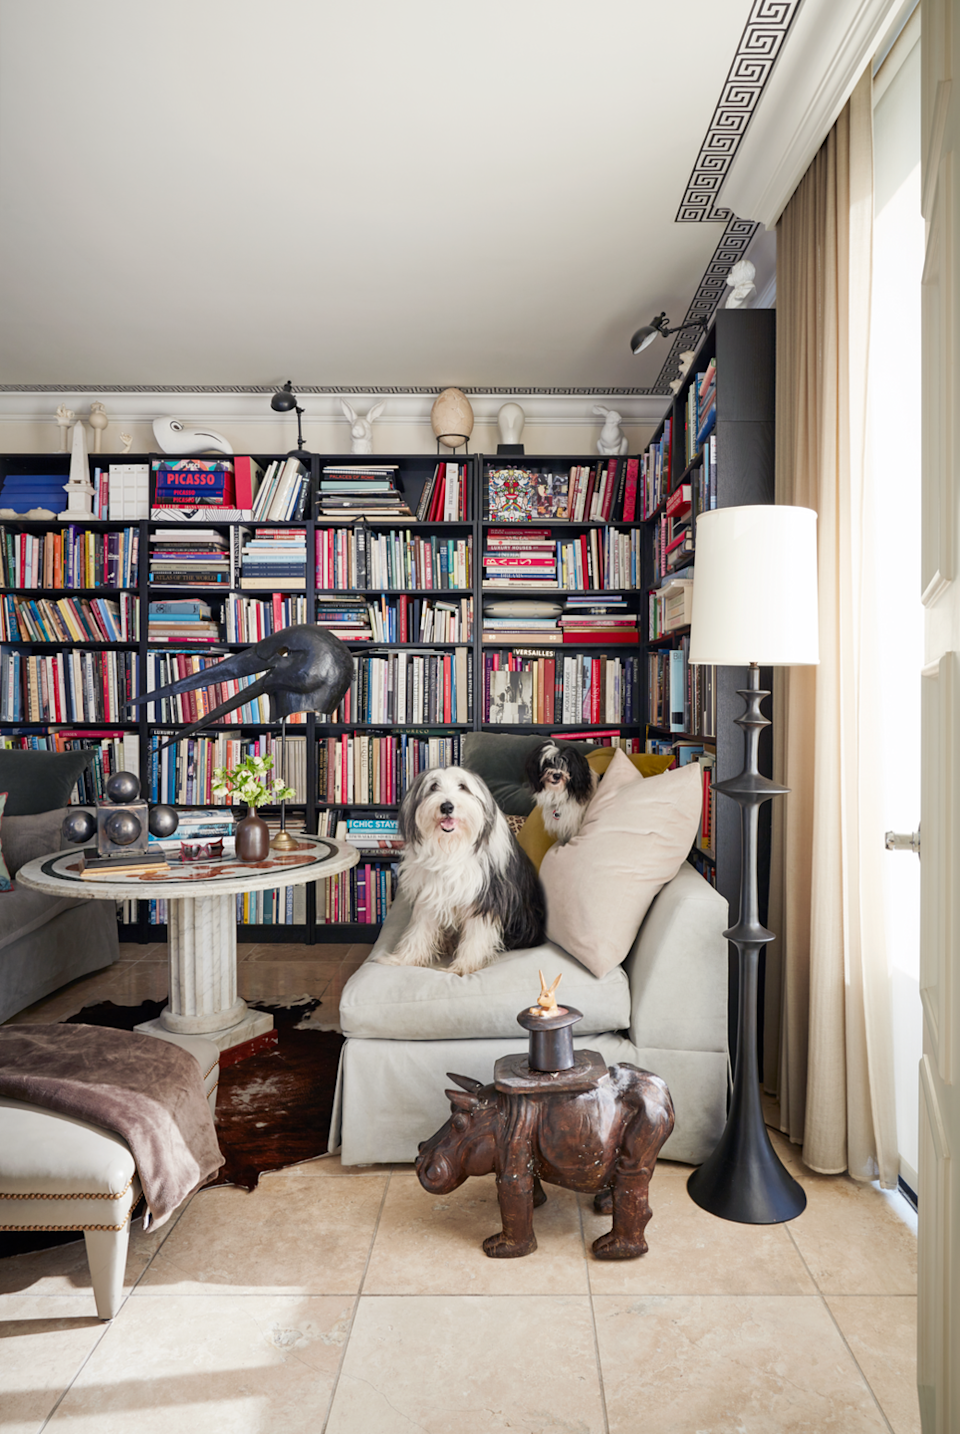 "<p>A black and beige motif is perfect for allowing an impressive (and colorful) book collection to shine, as shown here in this Atlanta home designed by <a href=""http://oetgendesign.com/"" rel=""nofollow noopener"" target=""_blank"" data-ylk=""slk:John Oetgen"" class=""link rapid-noclick-resp"">John Oetgen</a>. A Greek key border on the walls, an assortment of object, and a coffee table reminiscent of Ancient Greek architecture feels like a study for the modern Aristotle.</p>"